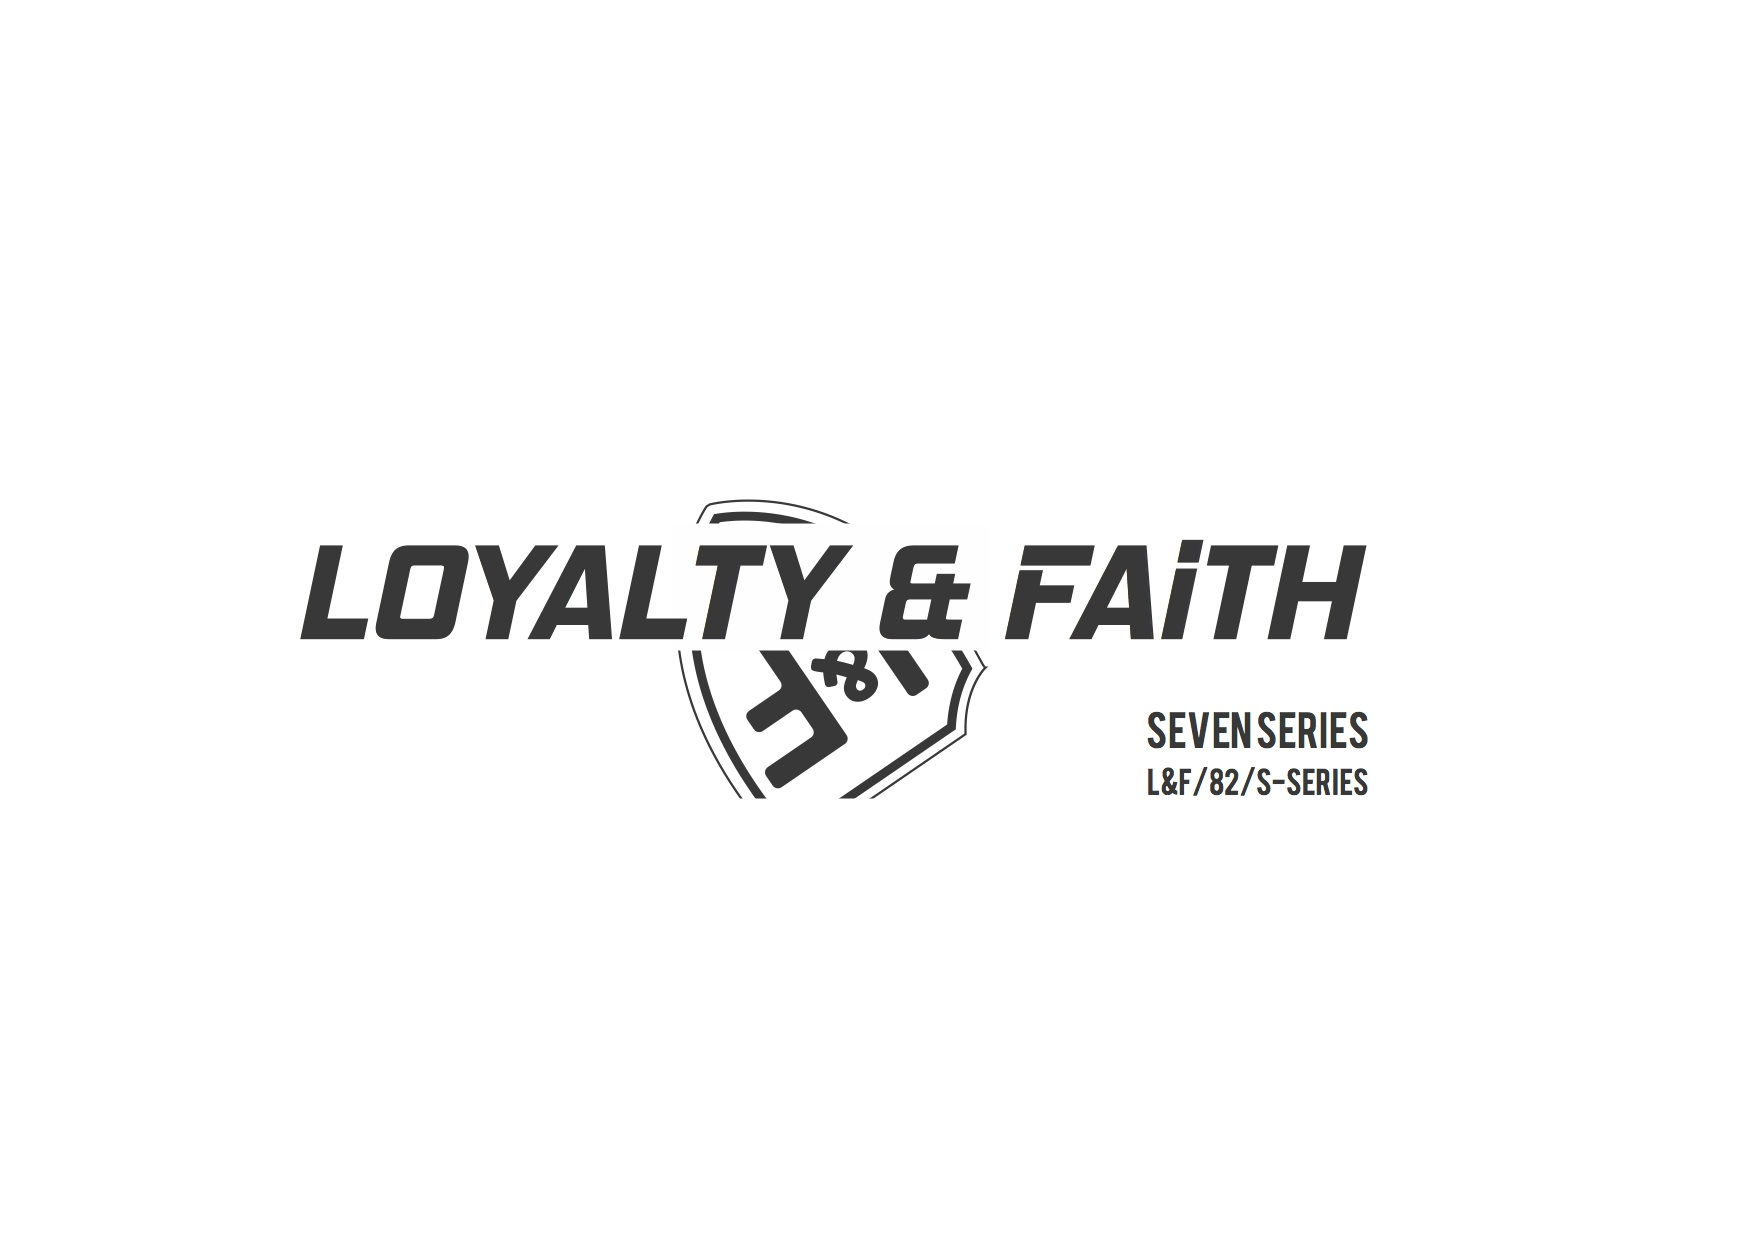 Loyalty & Faith